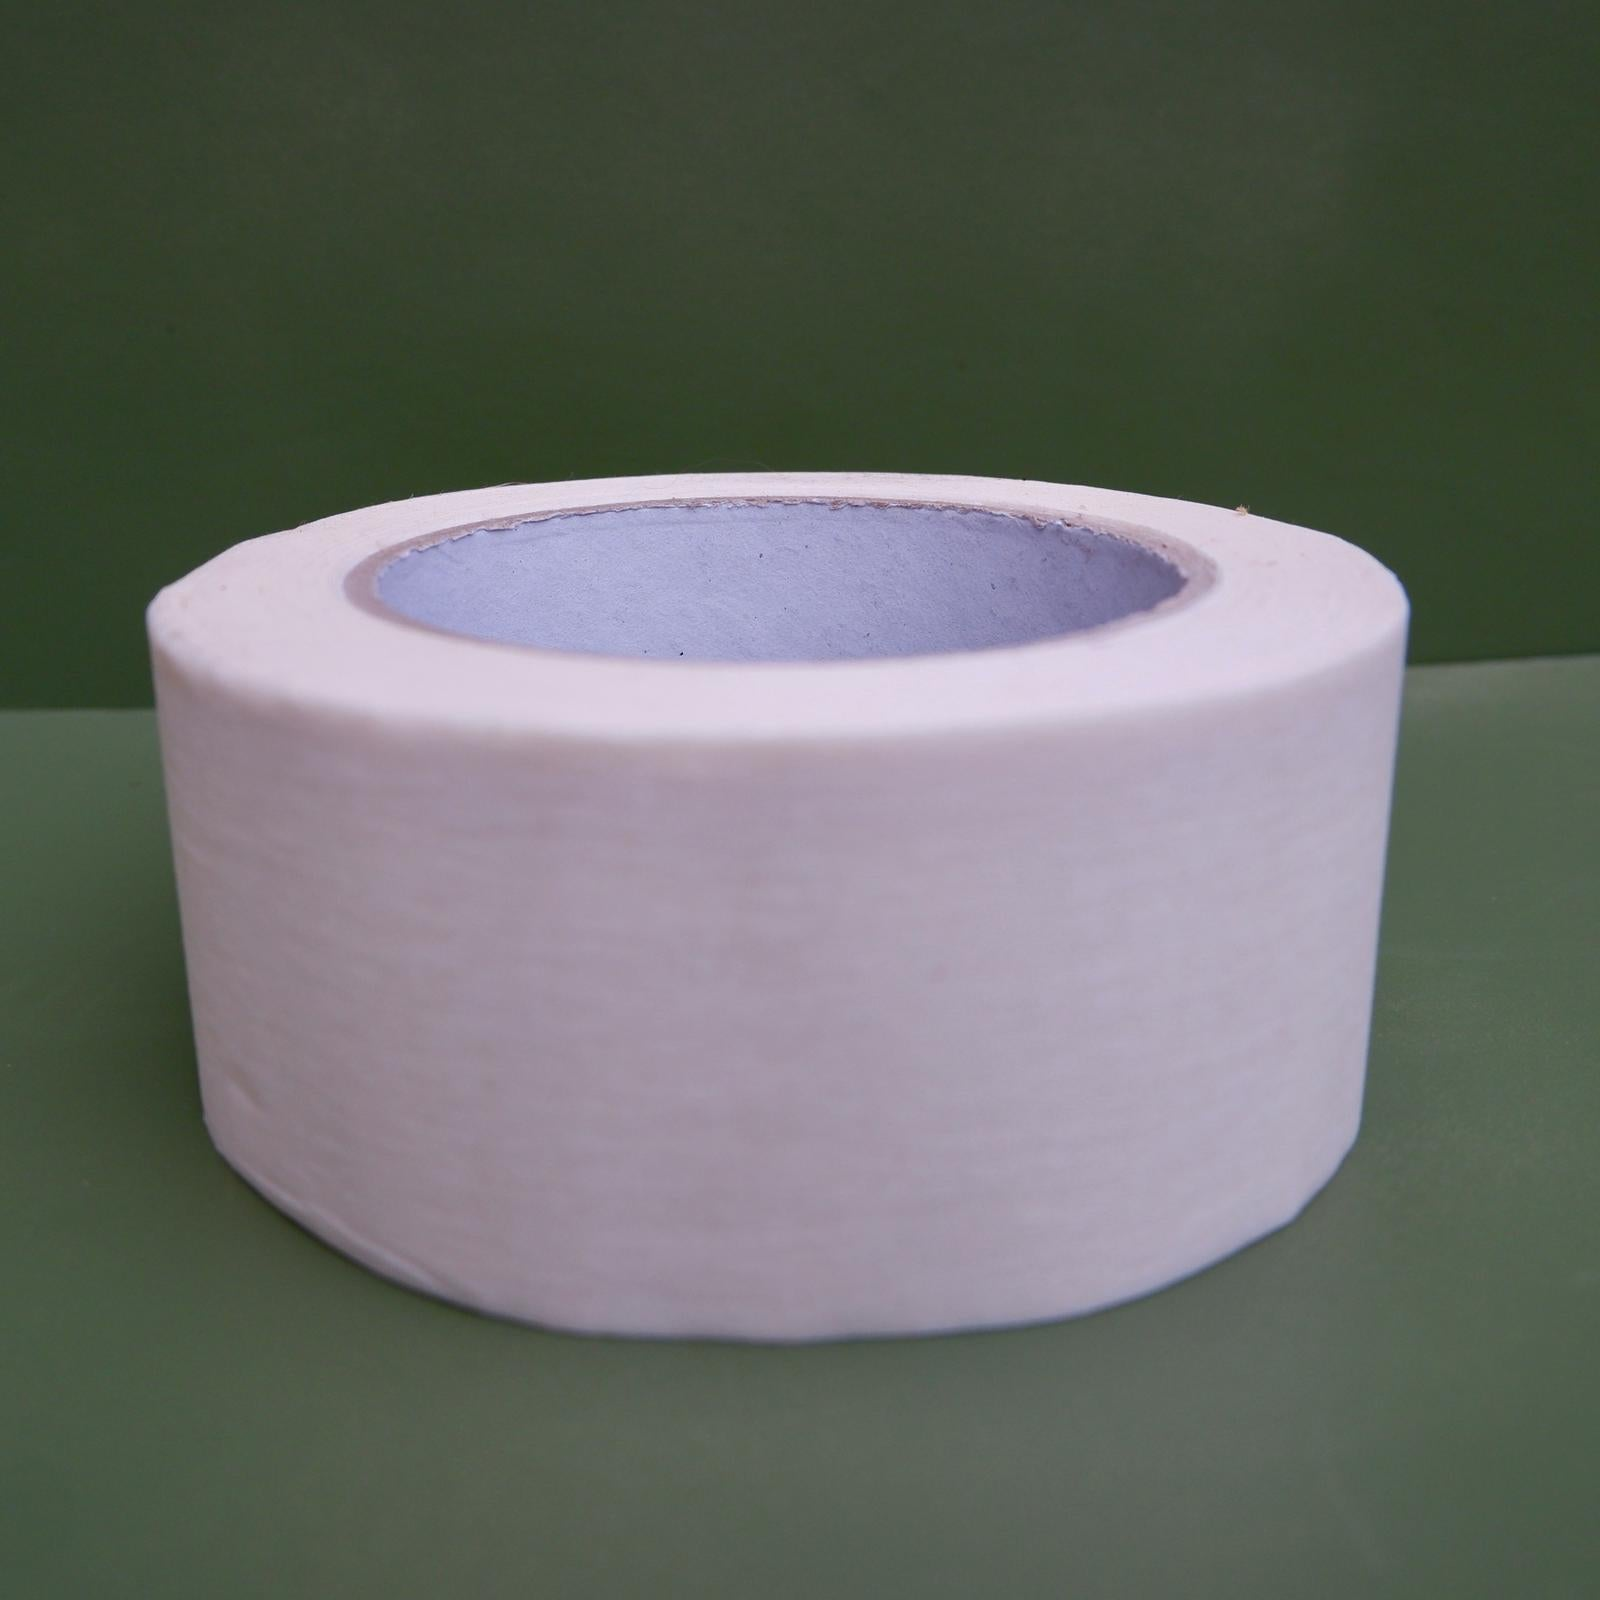 Naturally Wrapt roll of recycled ivory paper tape